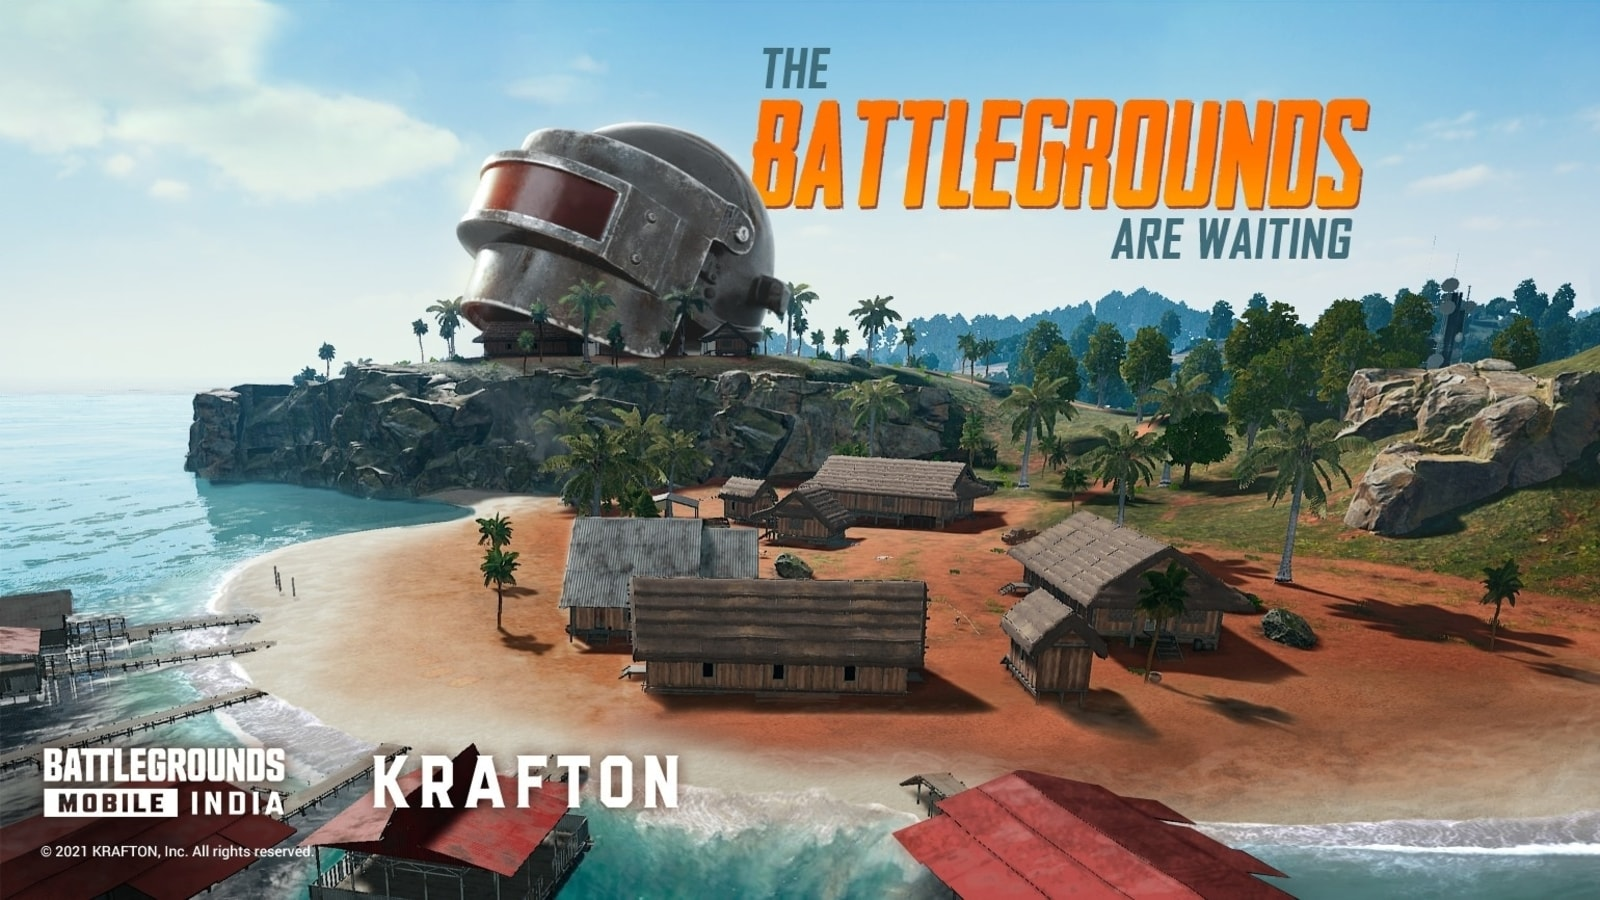 Registrations for PUBG replacement Battlegrounds Mobile India start on May 18: Here's everything you need to know